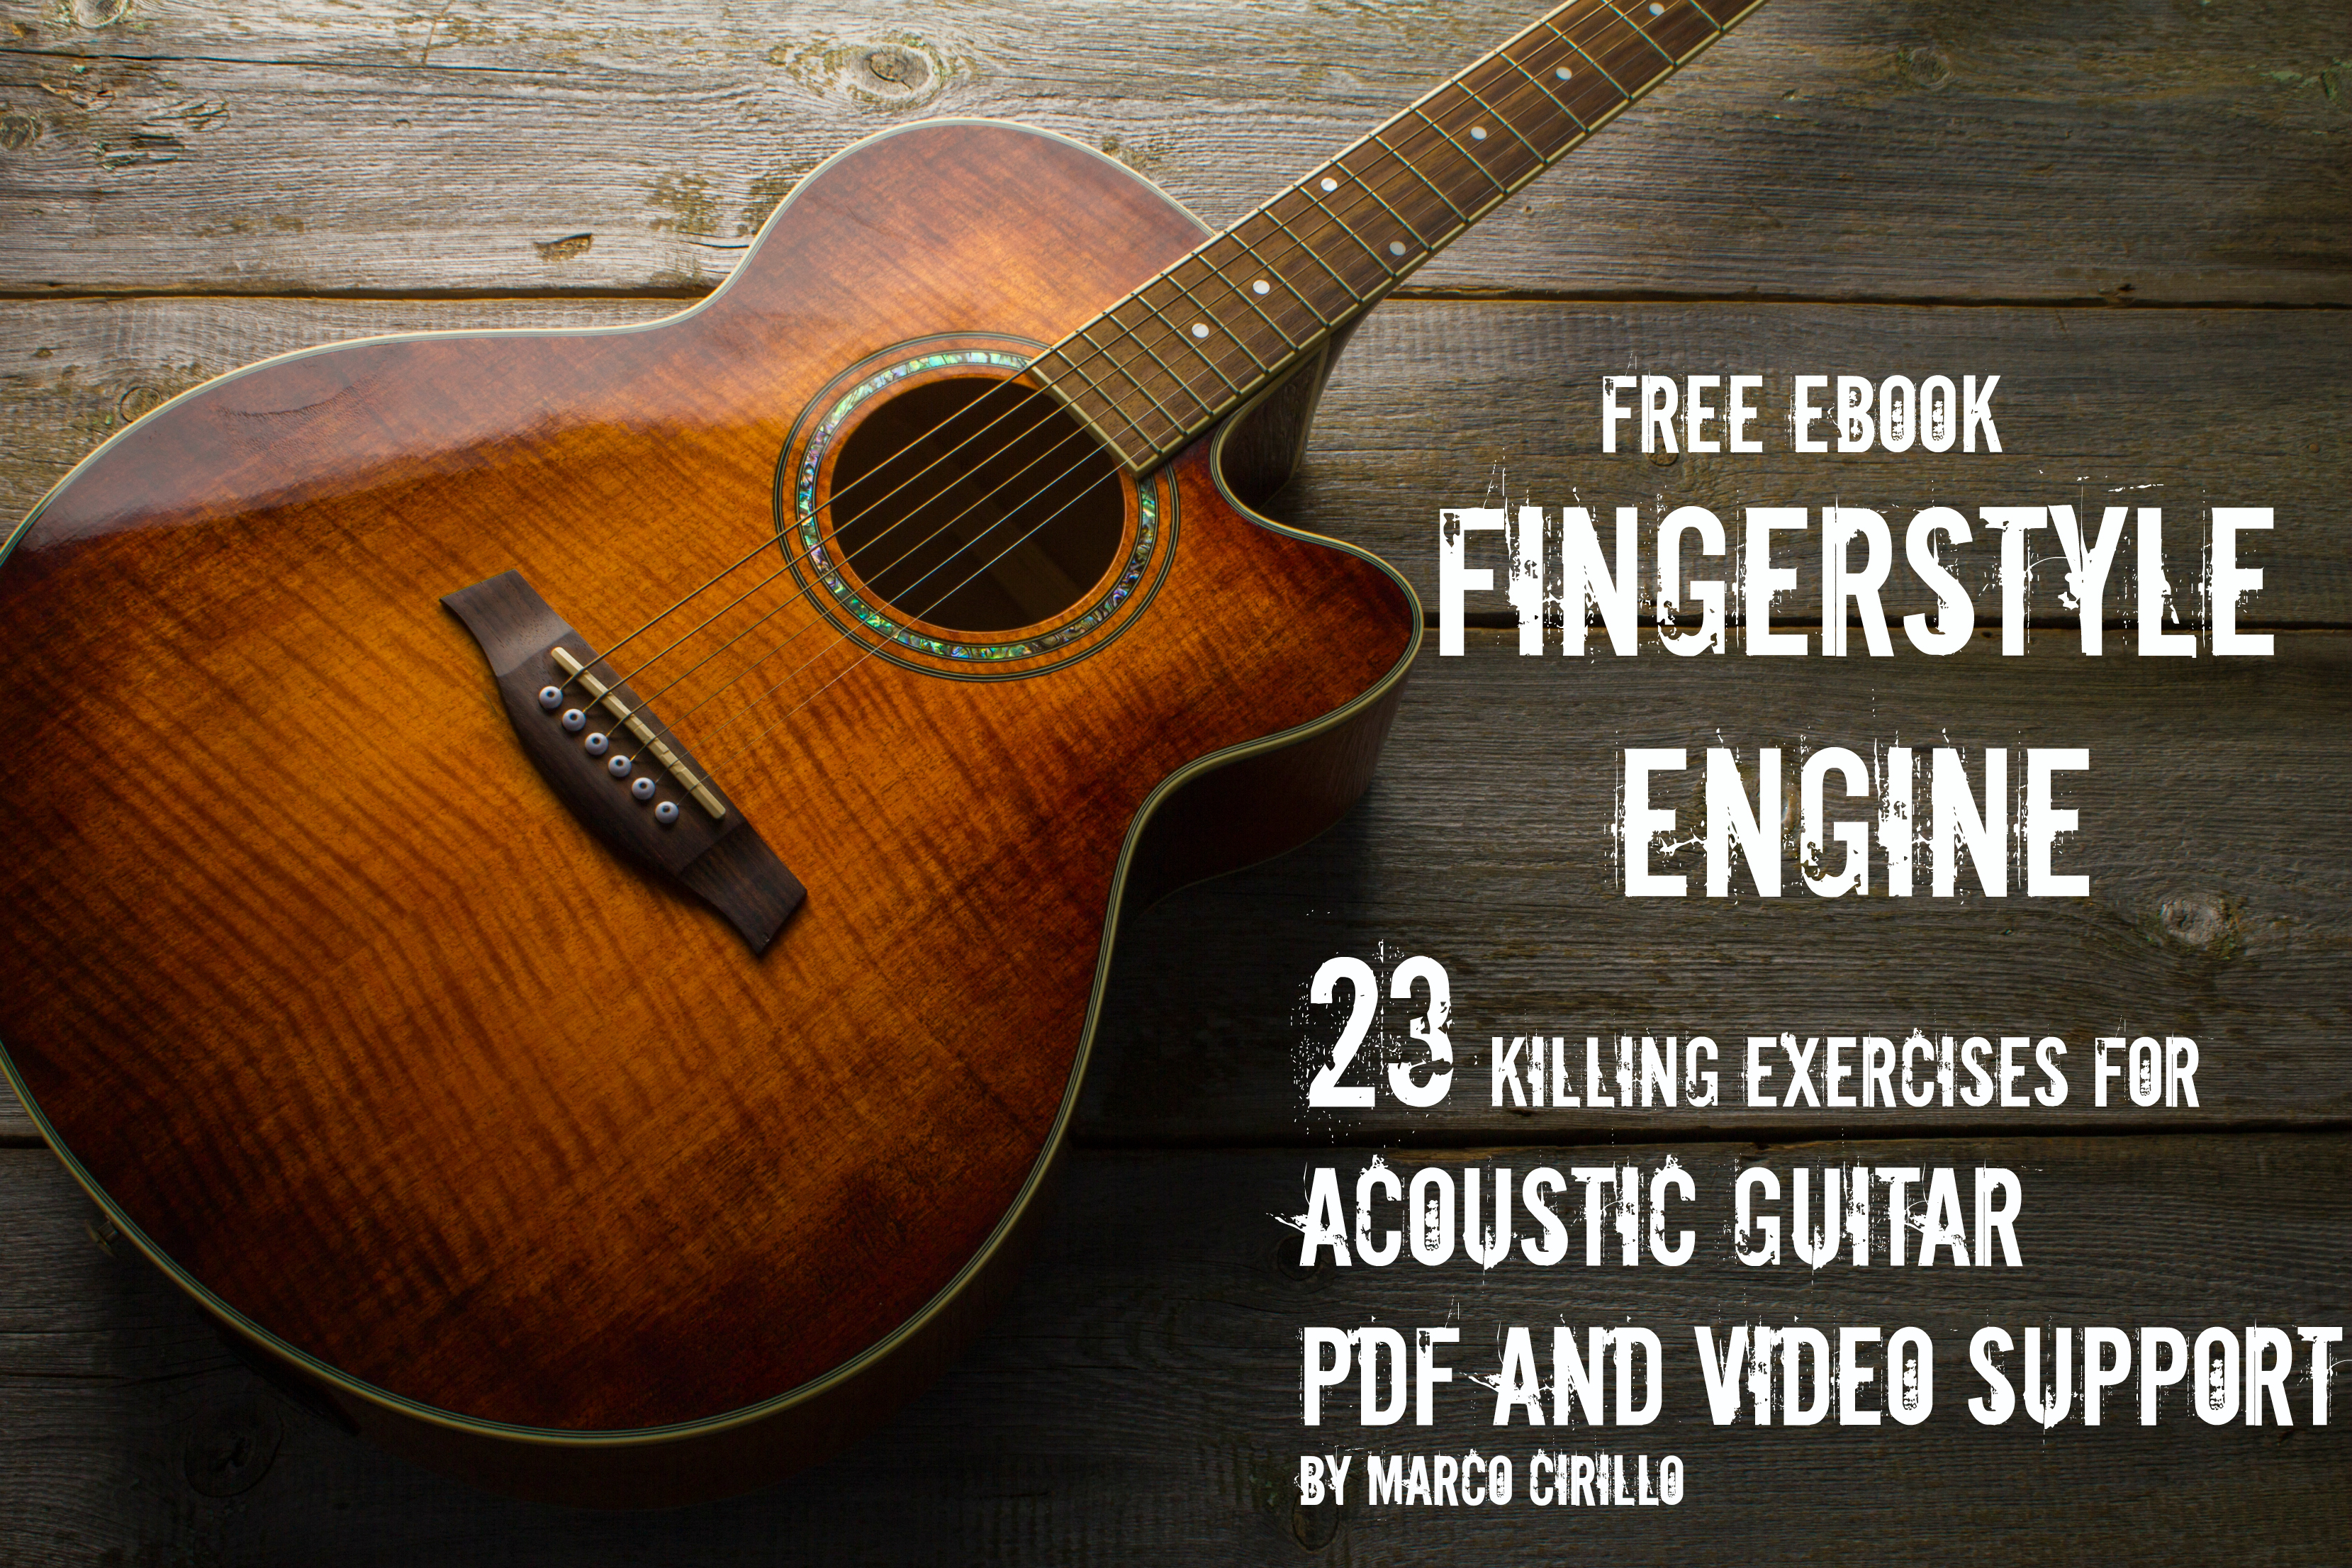 23GoodFingerstyle Engine - FINGERSTYLE GUITAR LESSONS